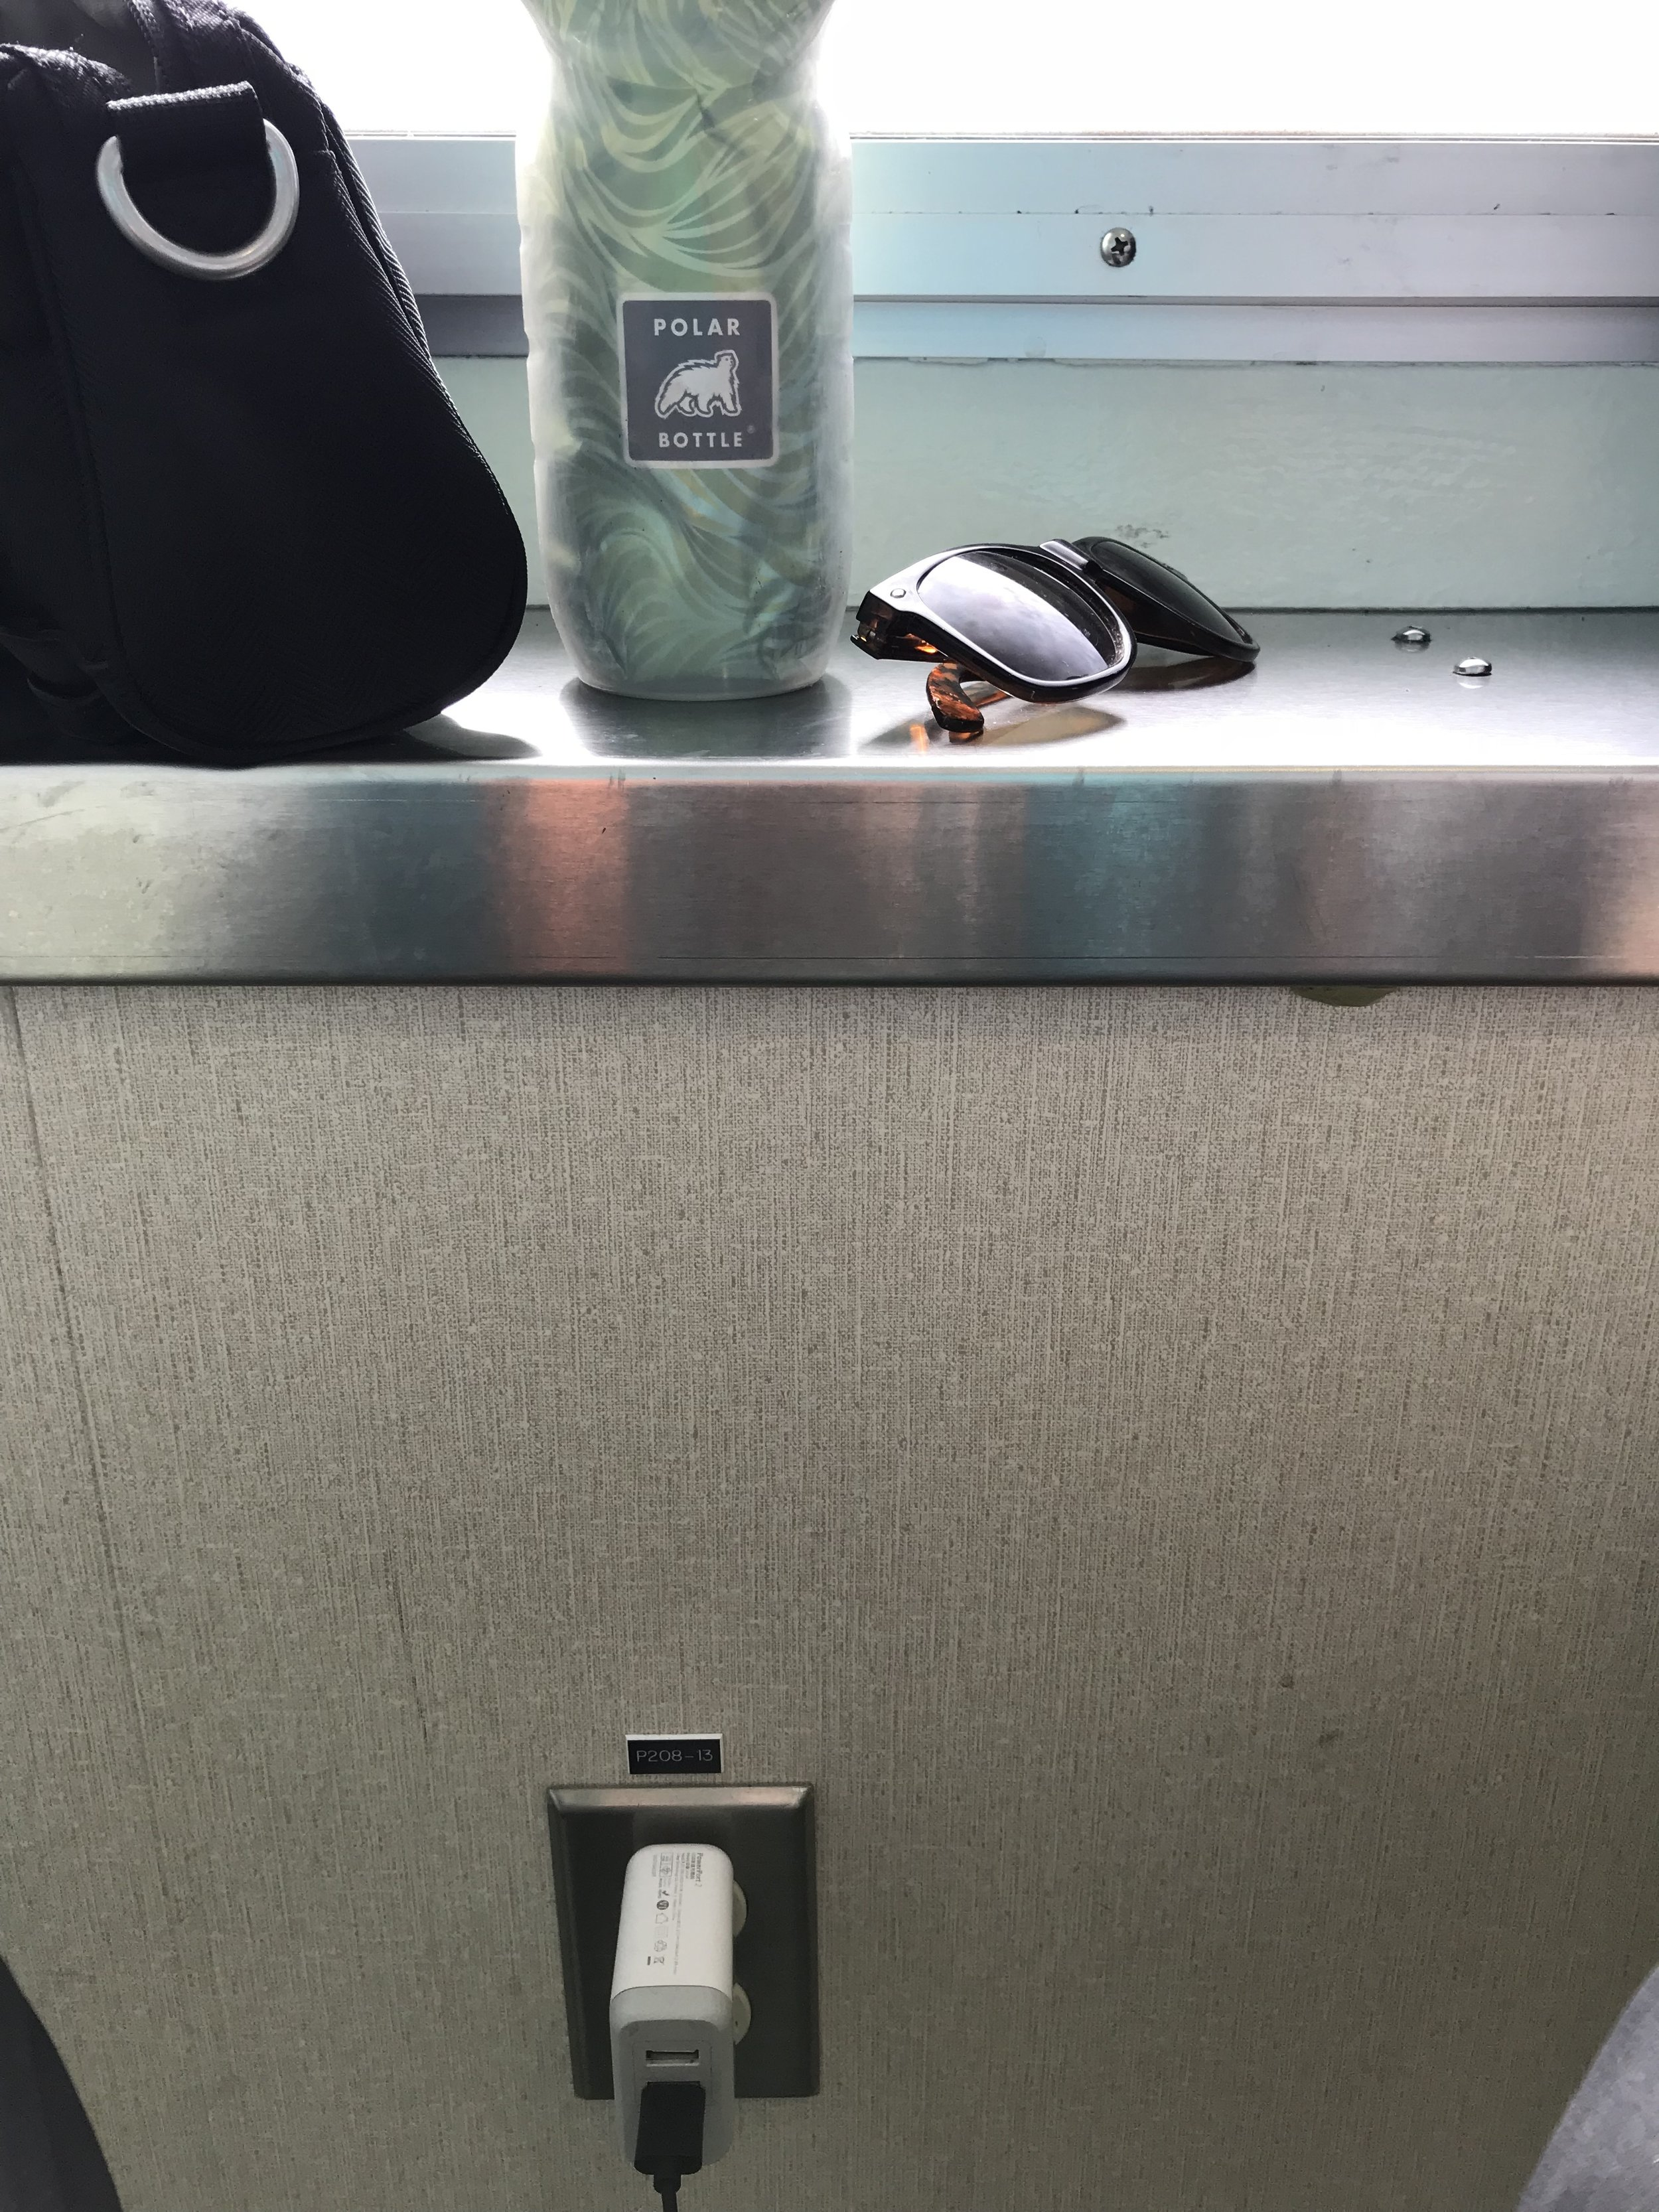 The pure magic of finding an outlet on the ferry.